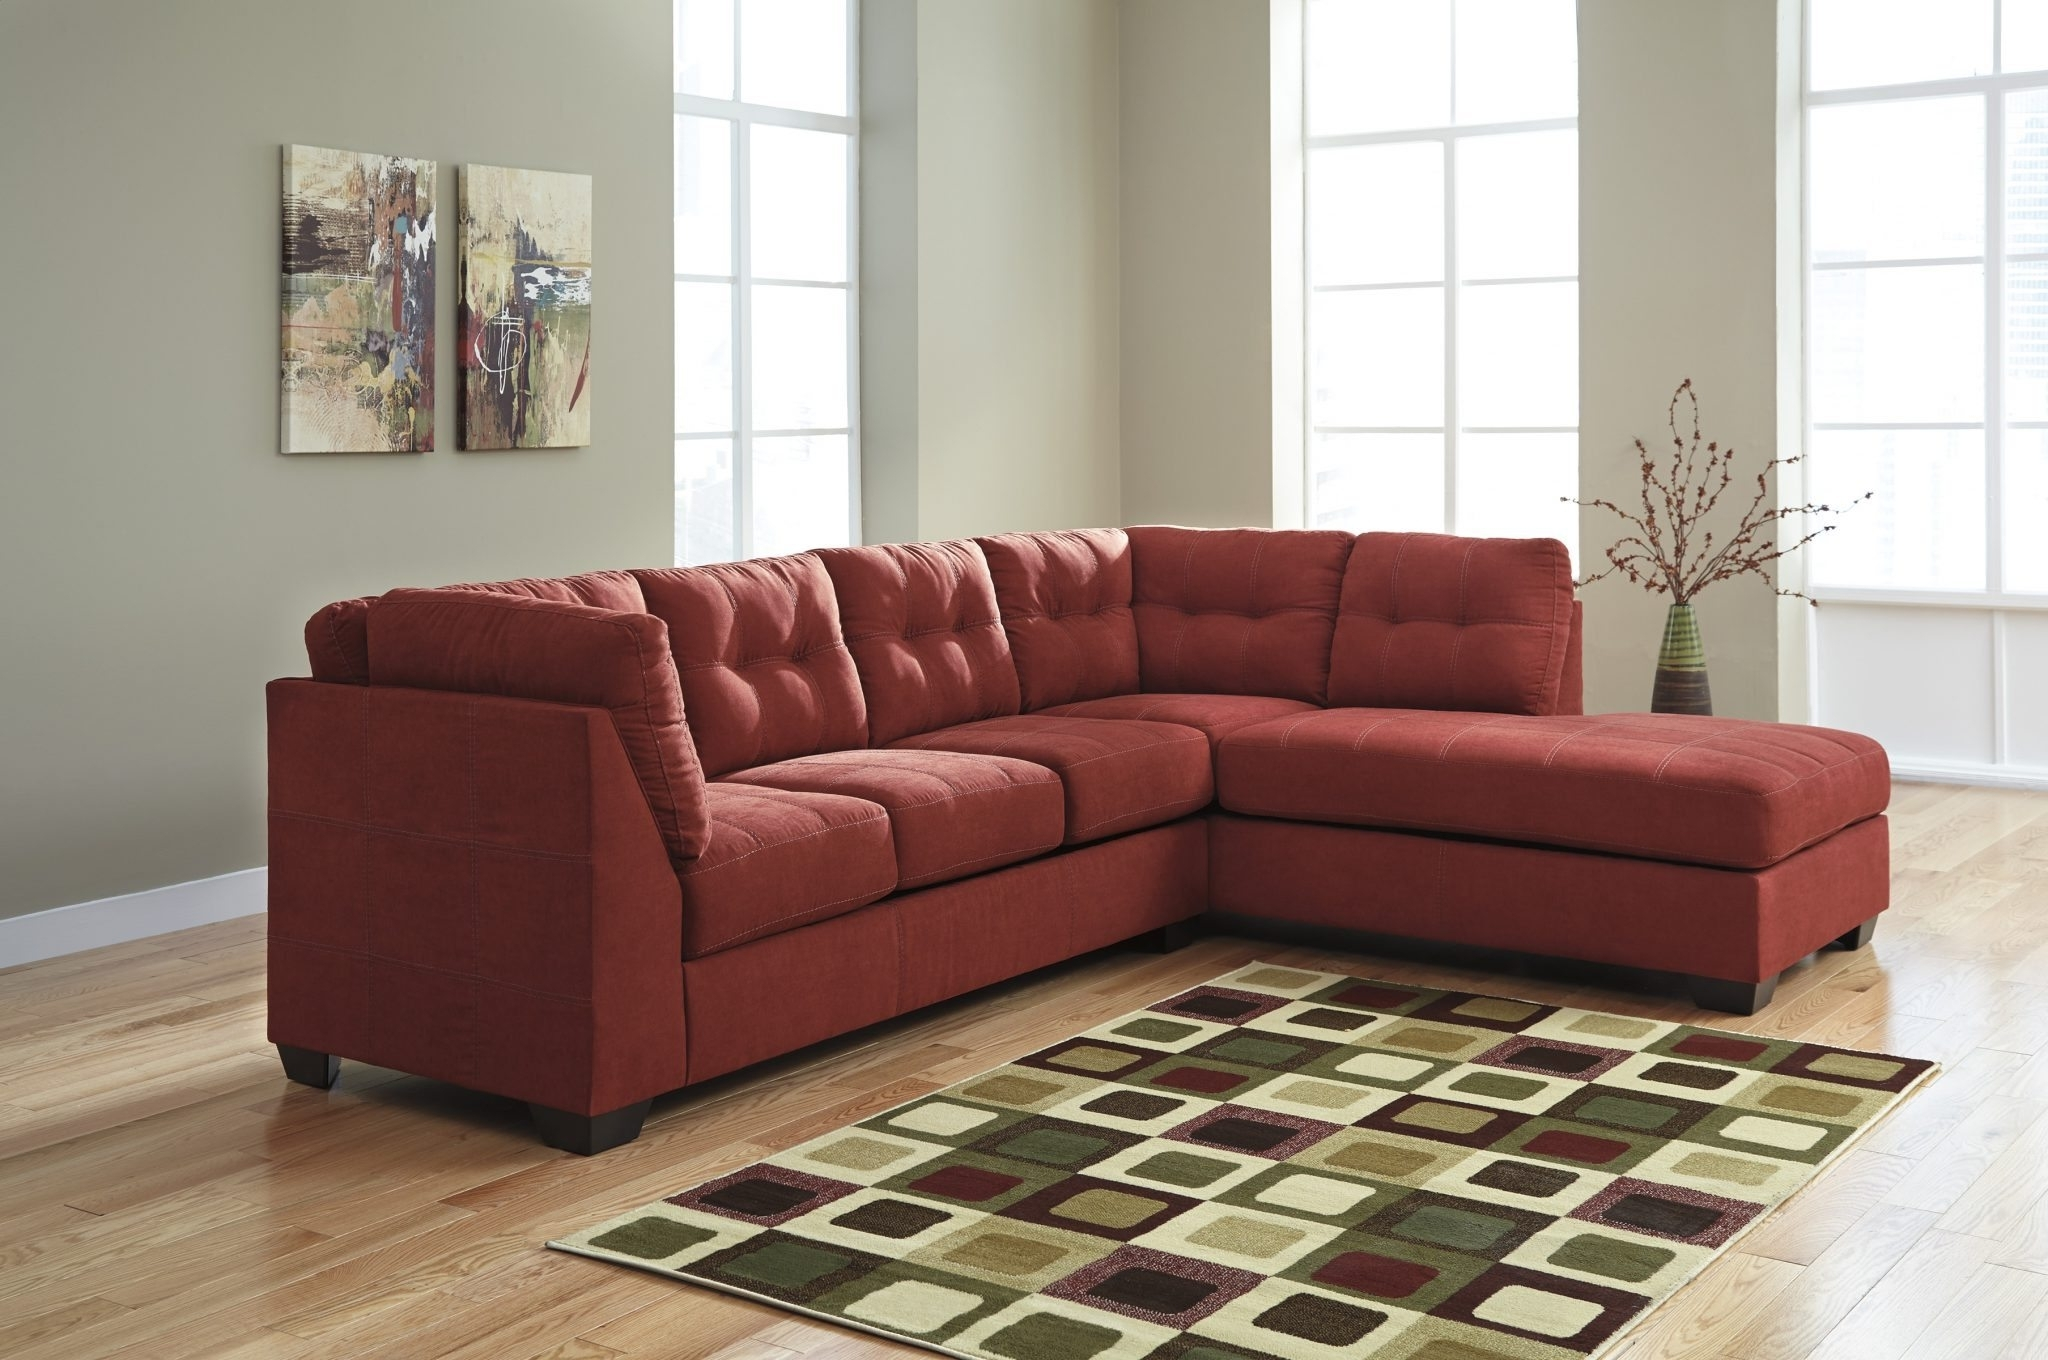 Fashionable Dufresne Sectional Sofas For Best Furniture Mentor Oh: Furniture Store – Ashley Furniture (View 11 of 20)